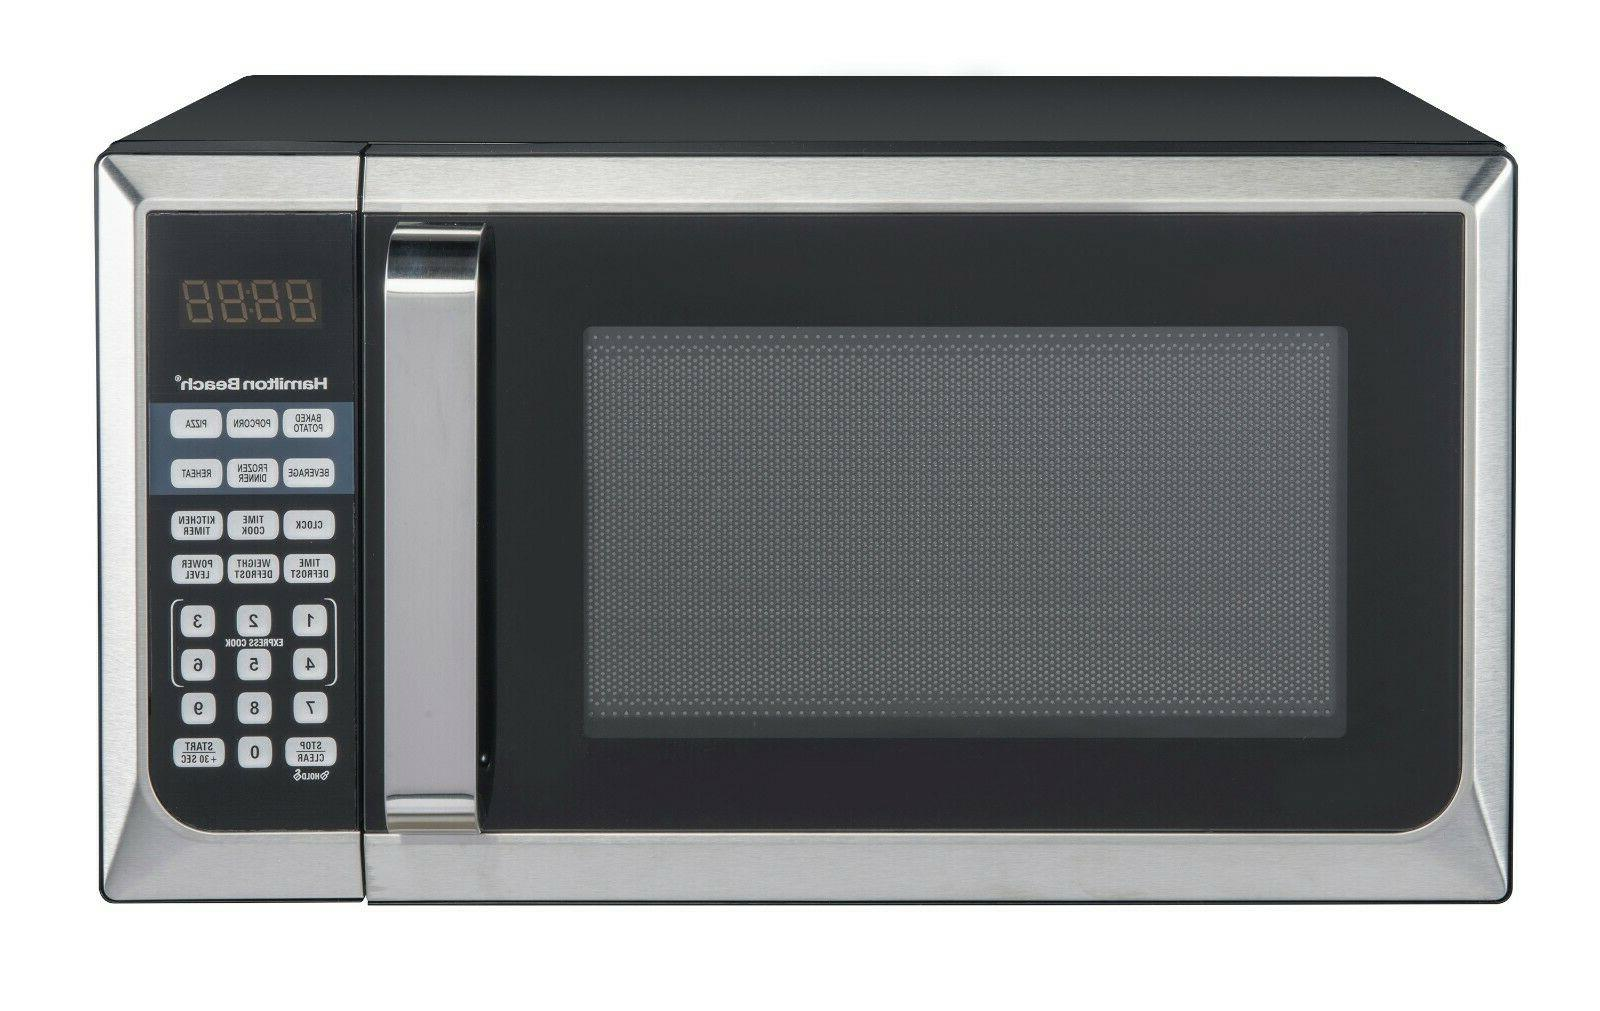 Countertop Microwave Ovens 0.9 Cu. Ft. Stainless Steel Count